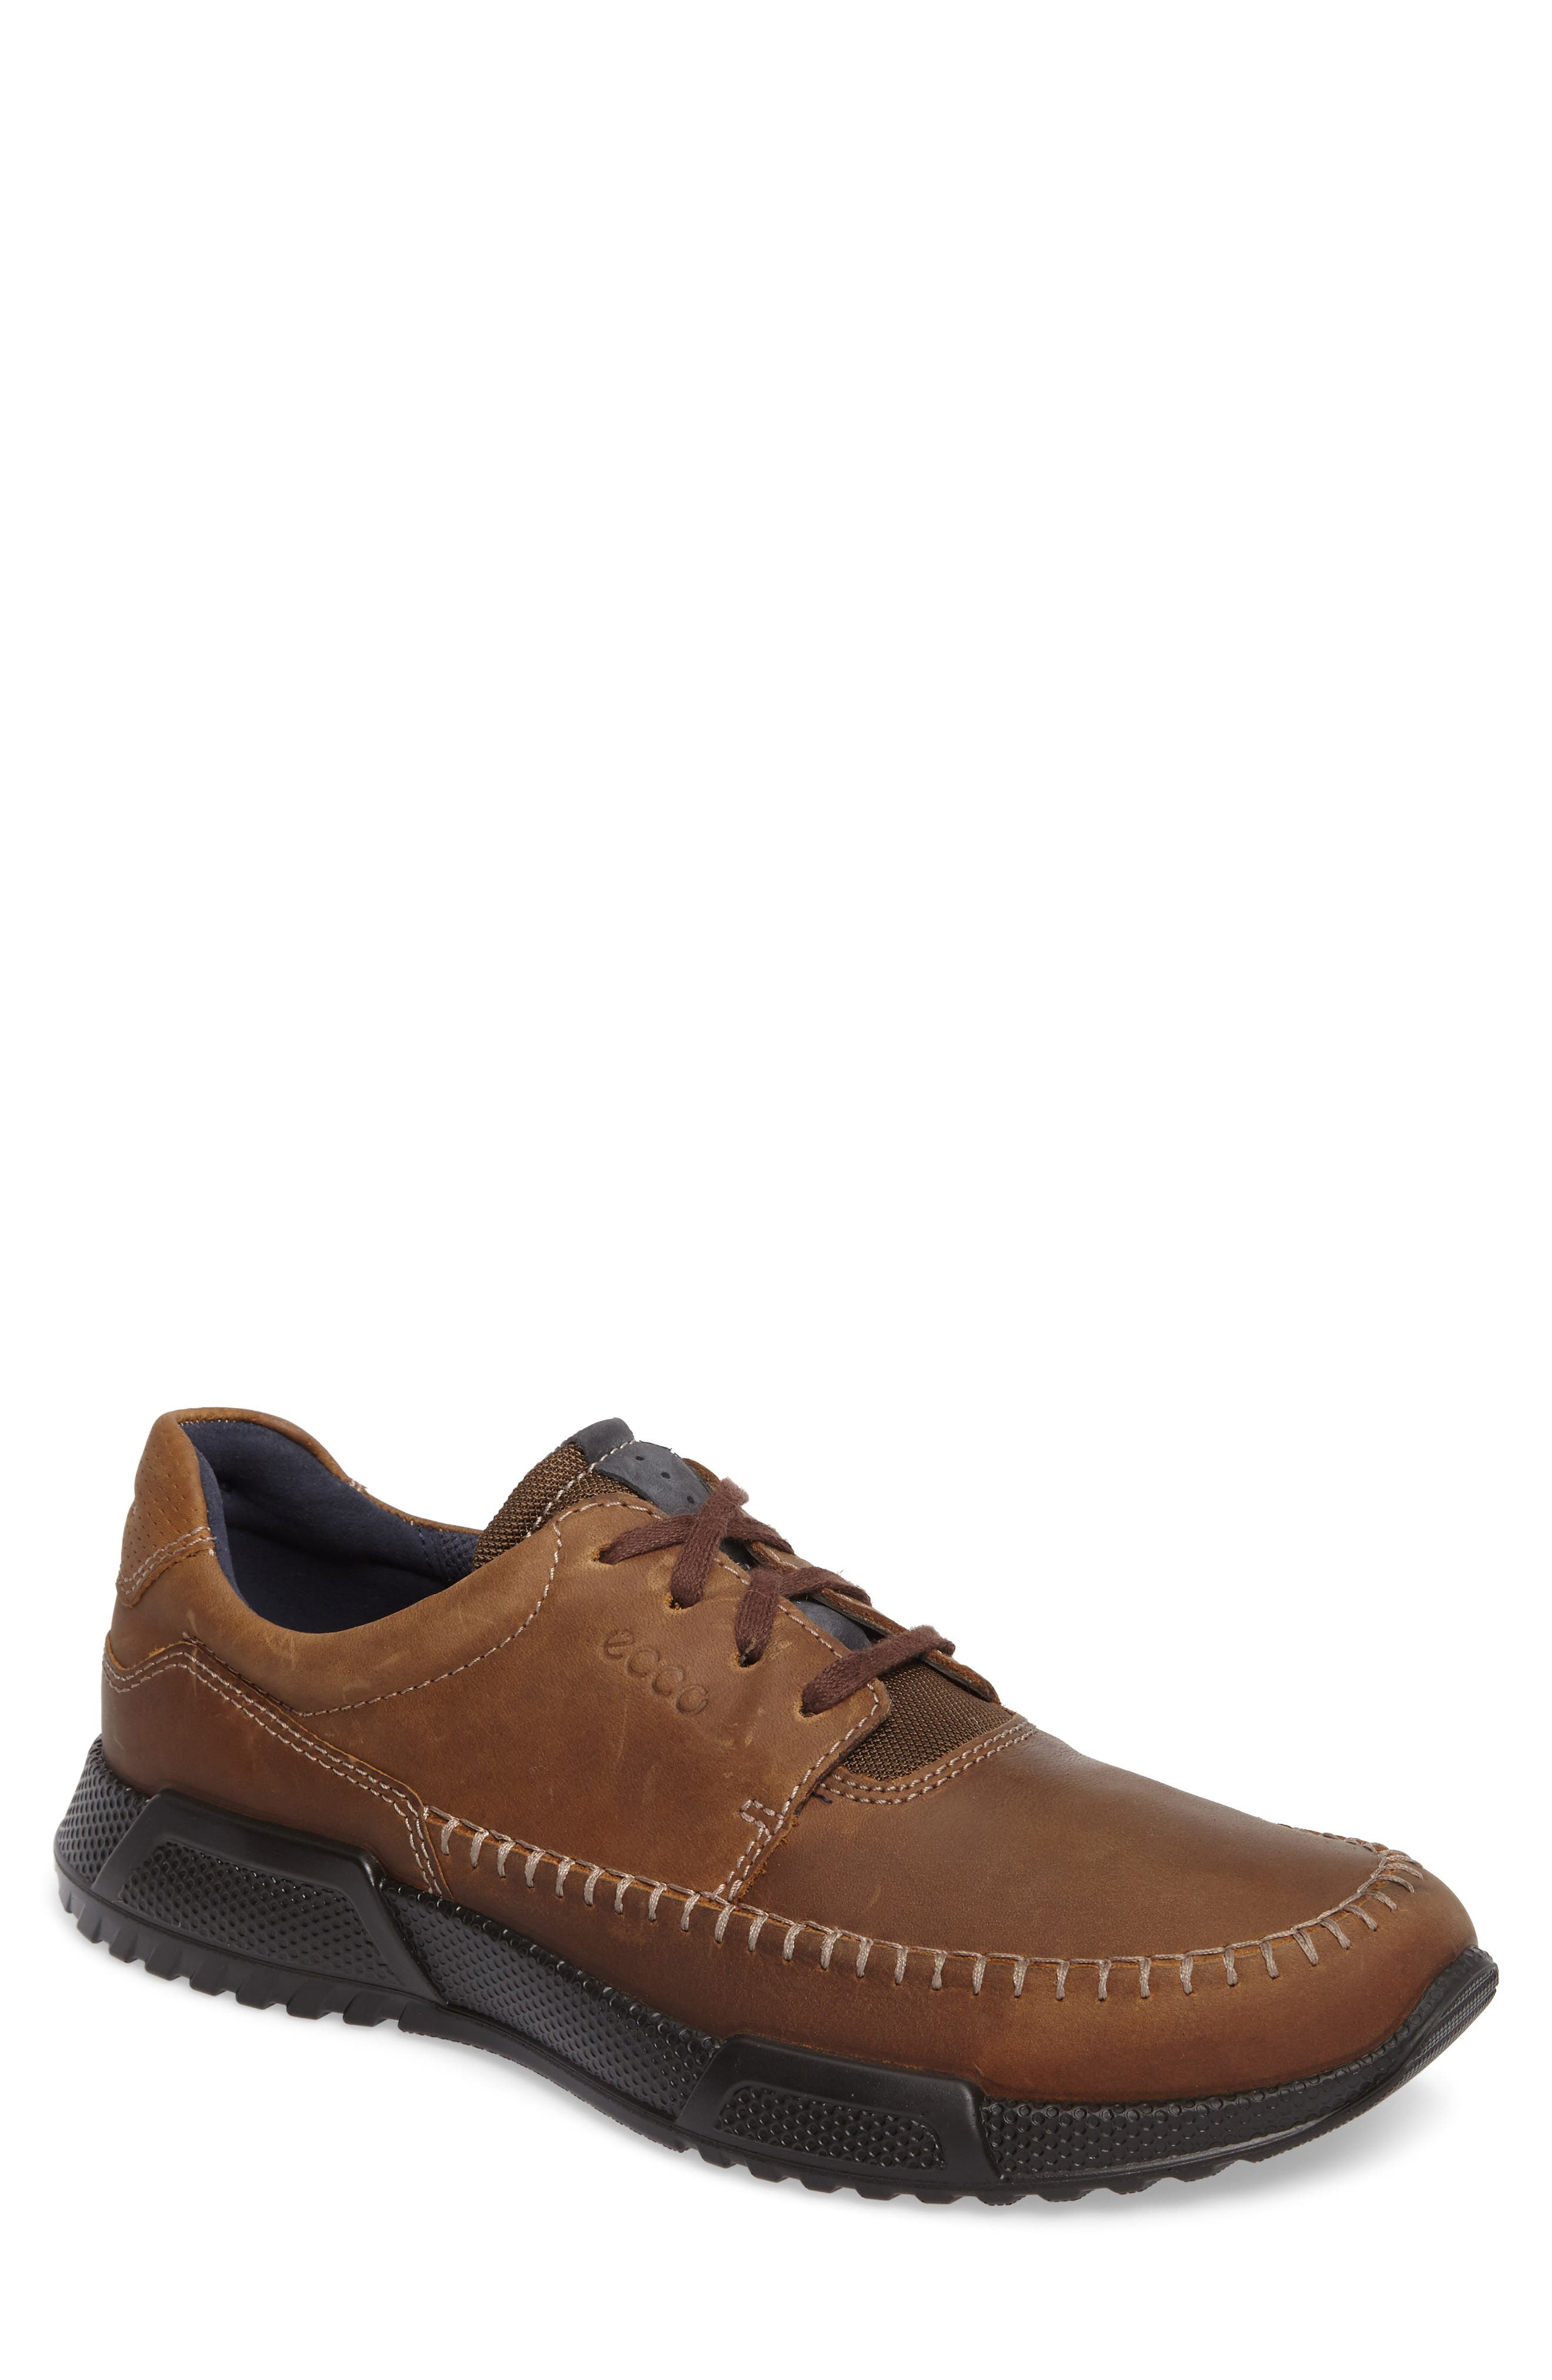 Alternate Image 1 Selected - ECCO Luca Moc Toe Oxford (Men)